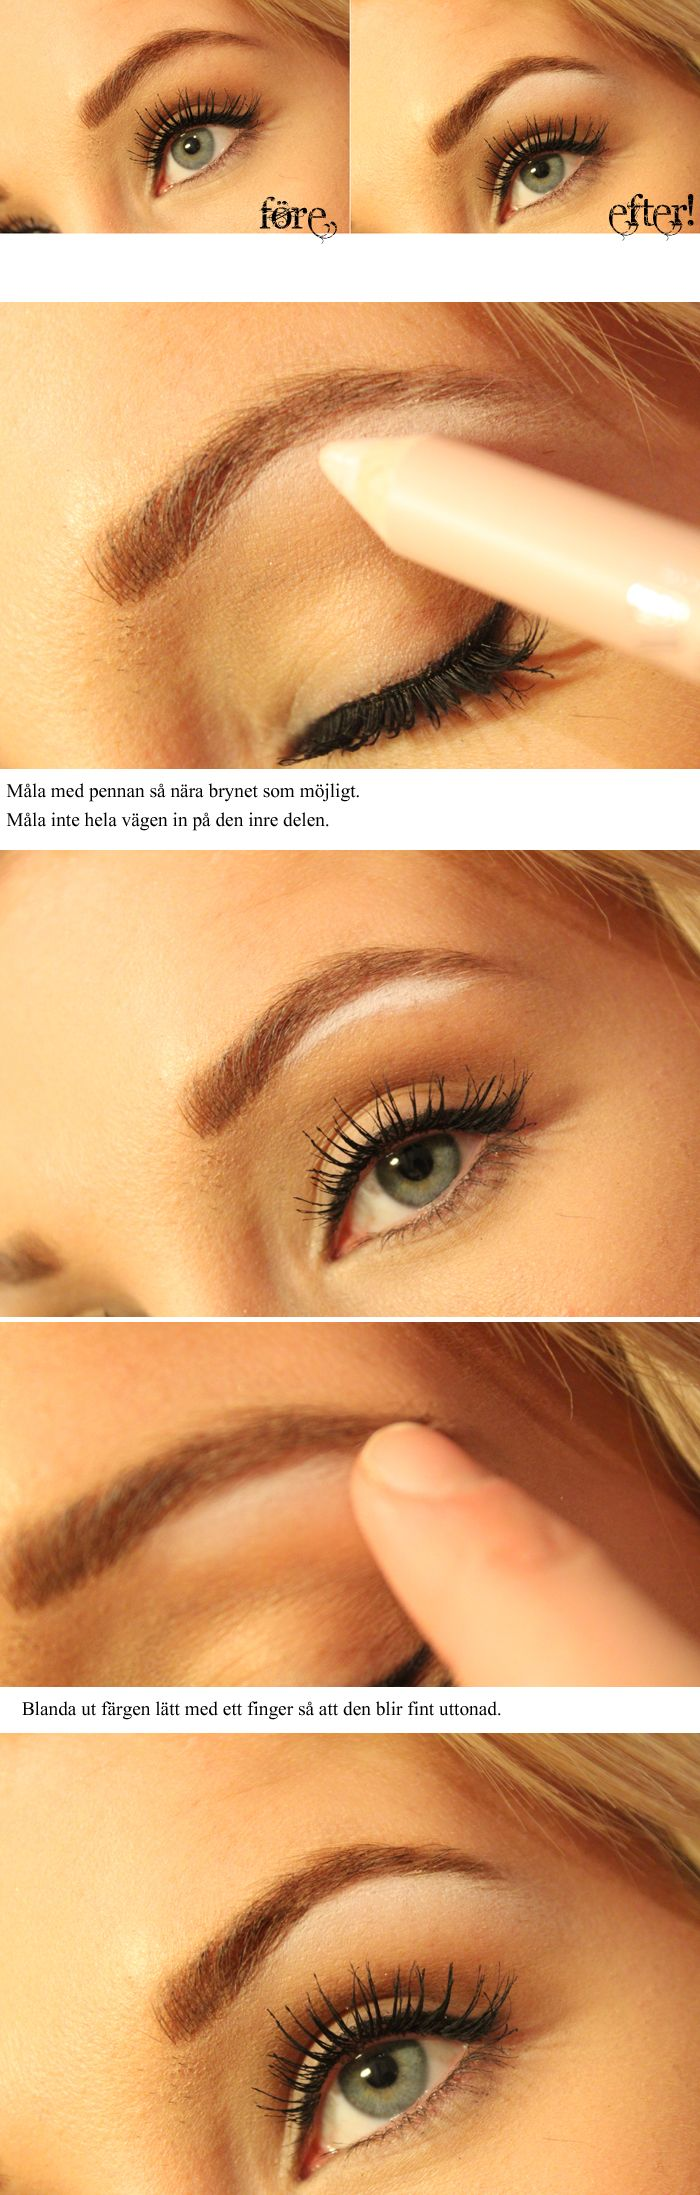 Before and After for highlighting your brows! Always do this, makes such a difference